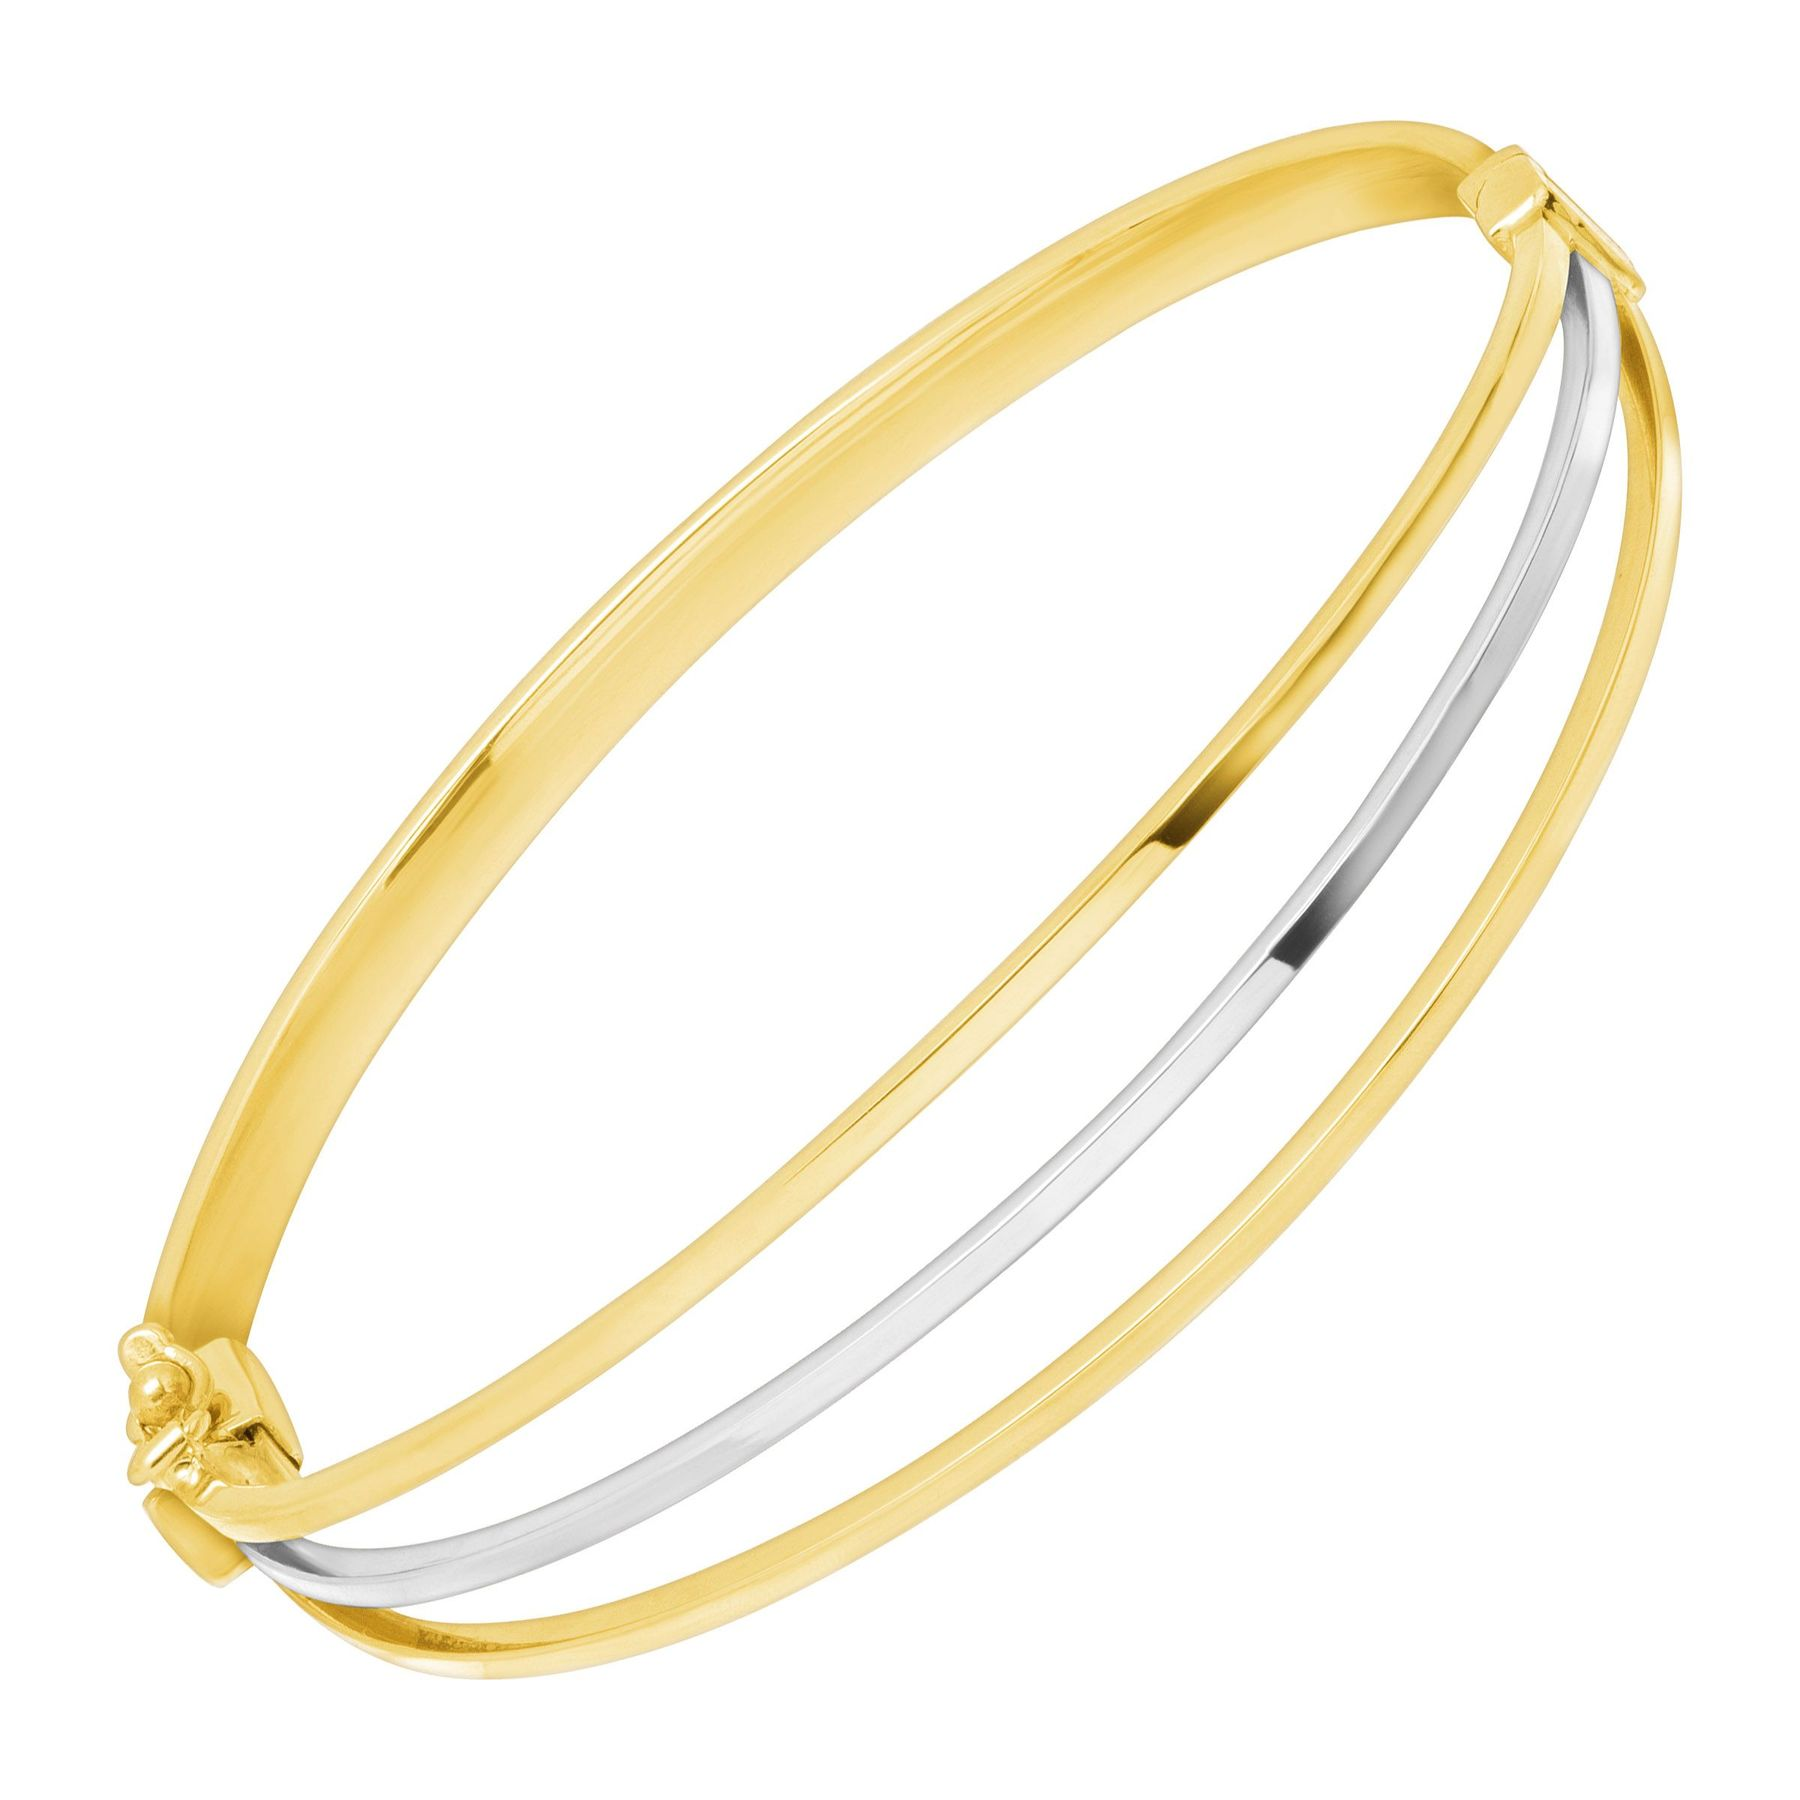 w purity popular bangles octane pvt bangle octagon zoom to jewels itan gold by in ltd y view hover bracelet velvetcase